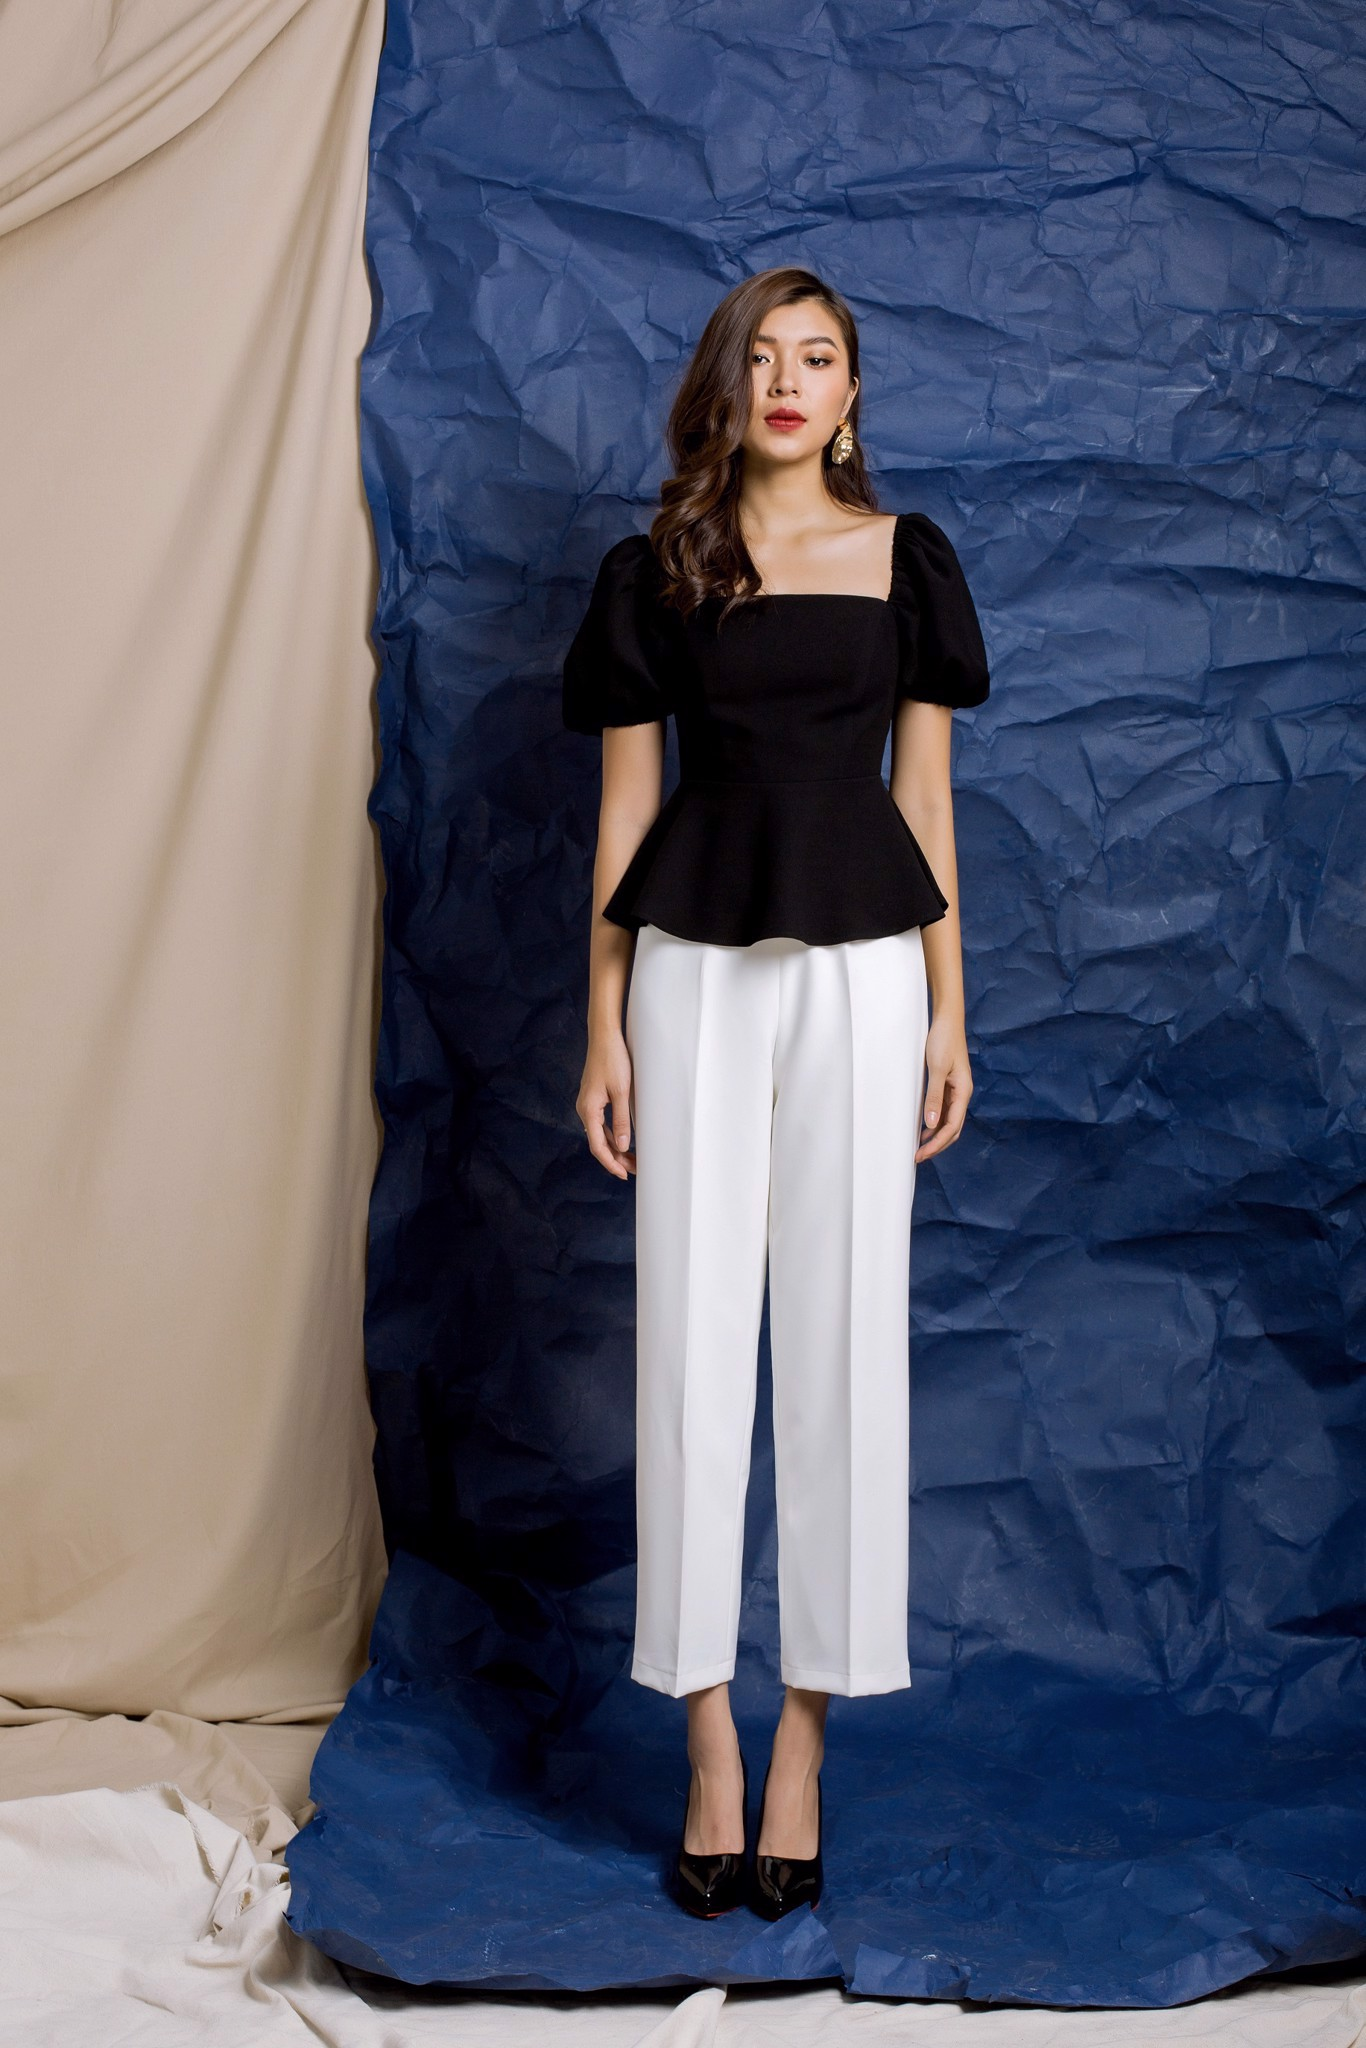 Chic Takeover High-waist Pants